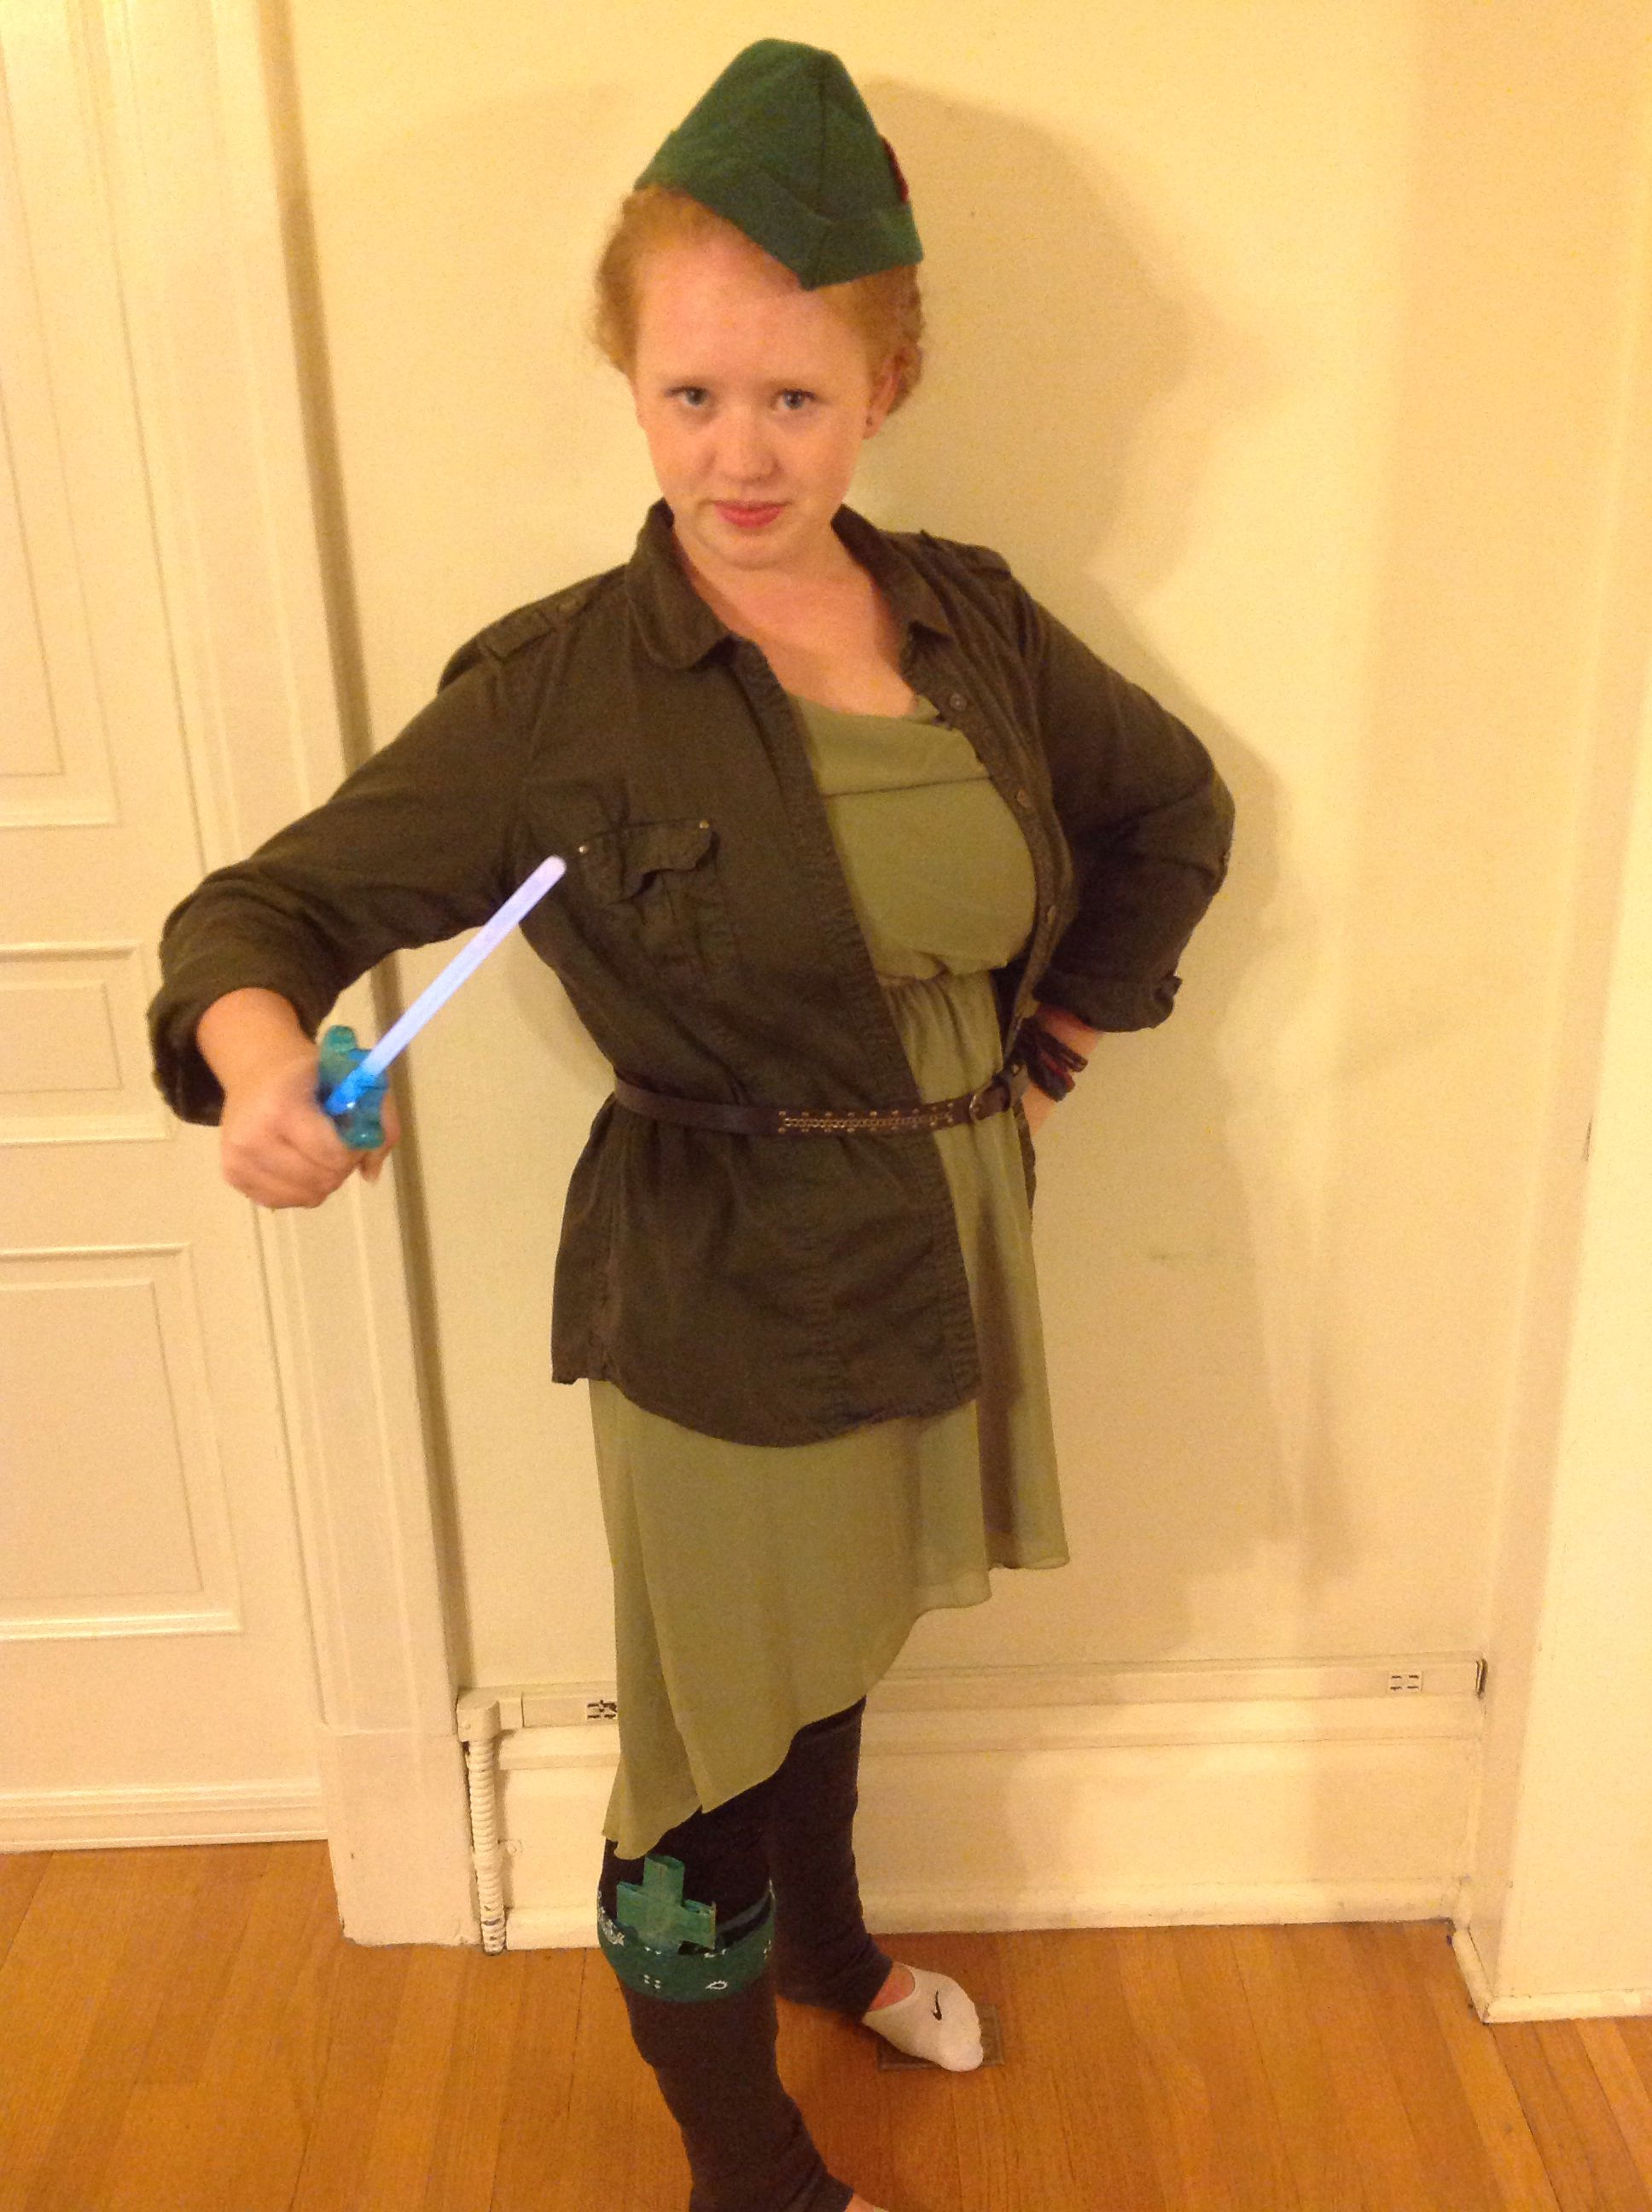 peter pan halloween costume! green dress, green jacket, belt, black